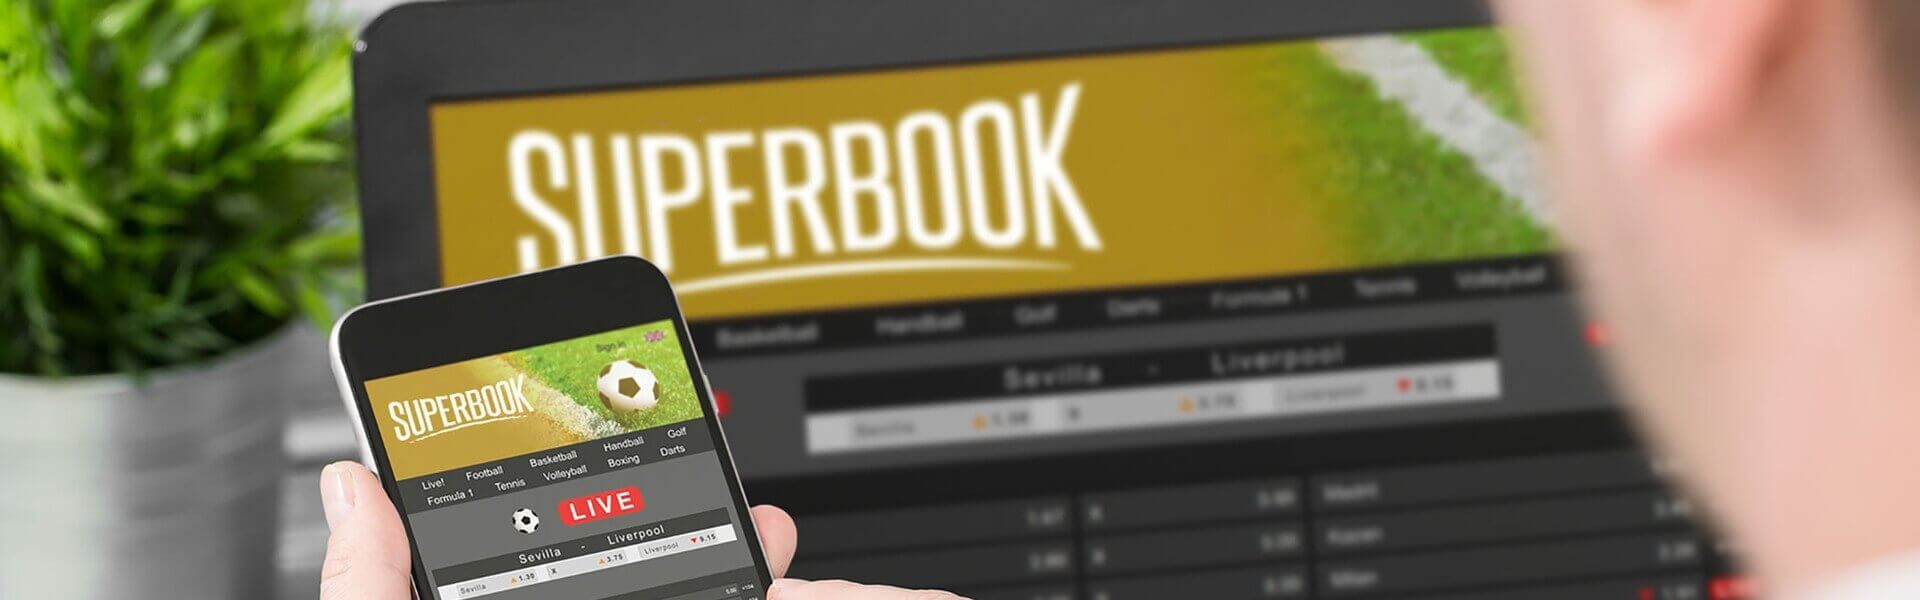 Westgate Superbook App